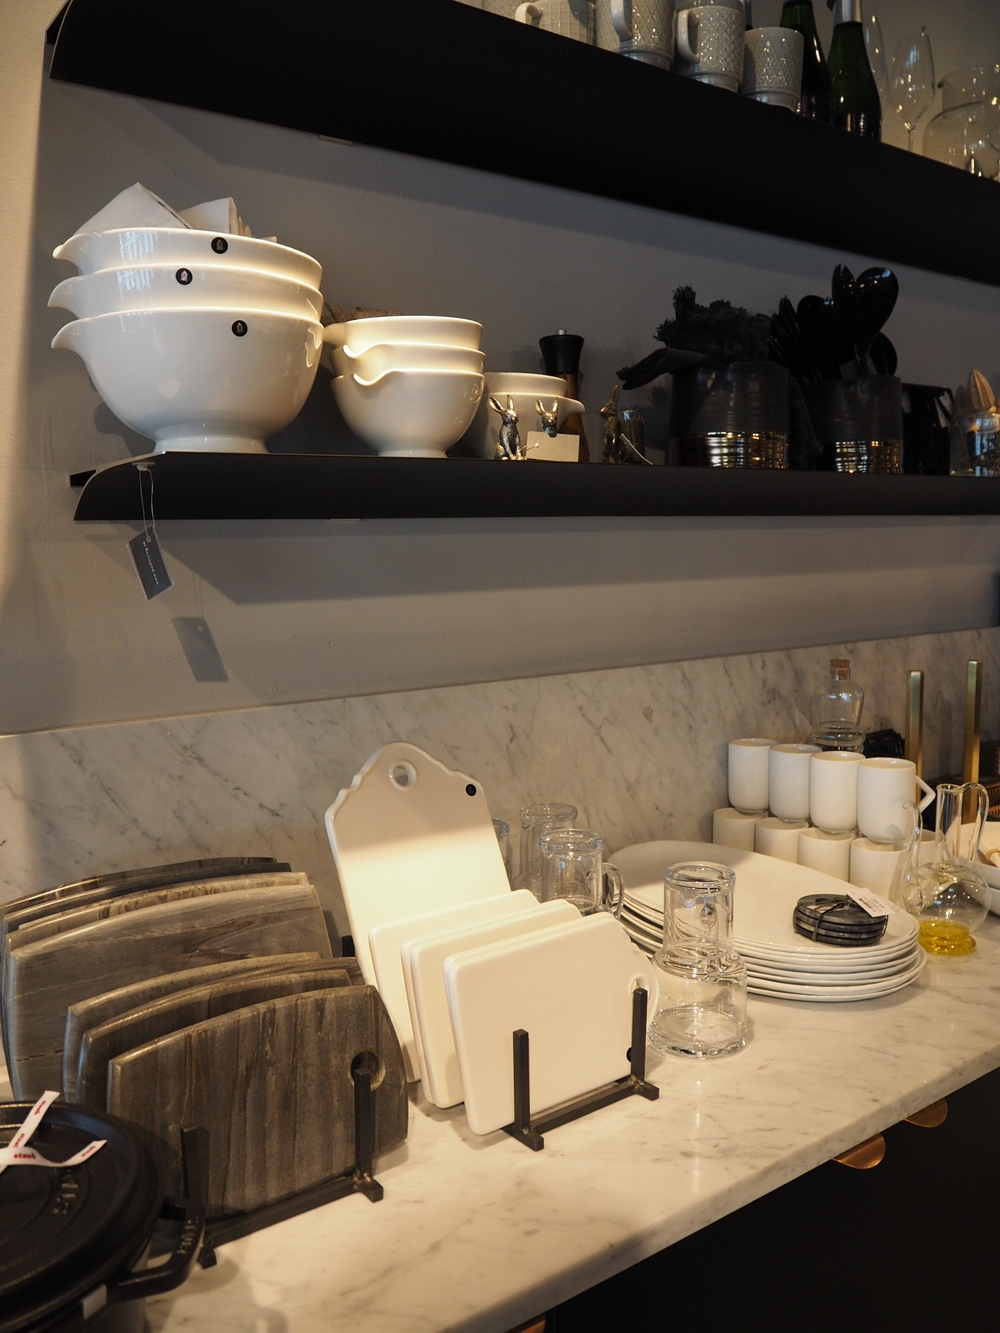 Kitchen accessories at Posh Living, Stockholm